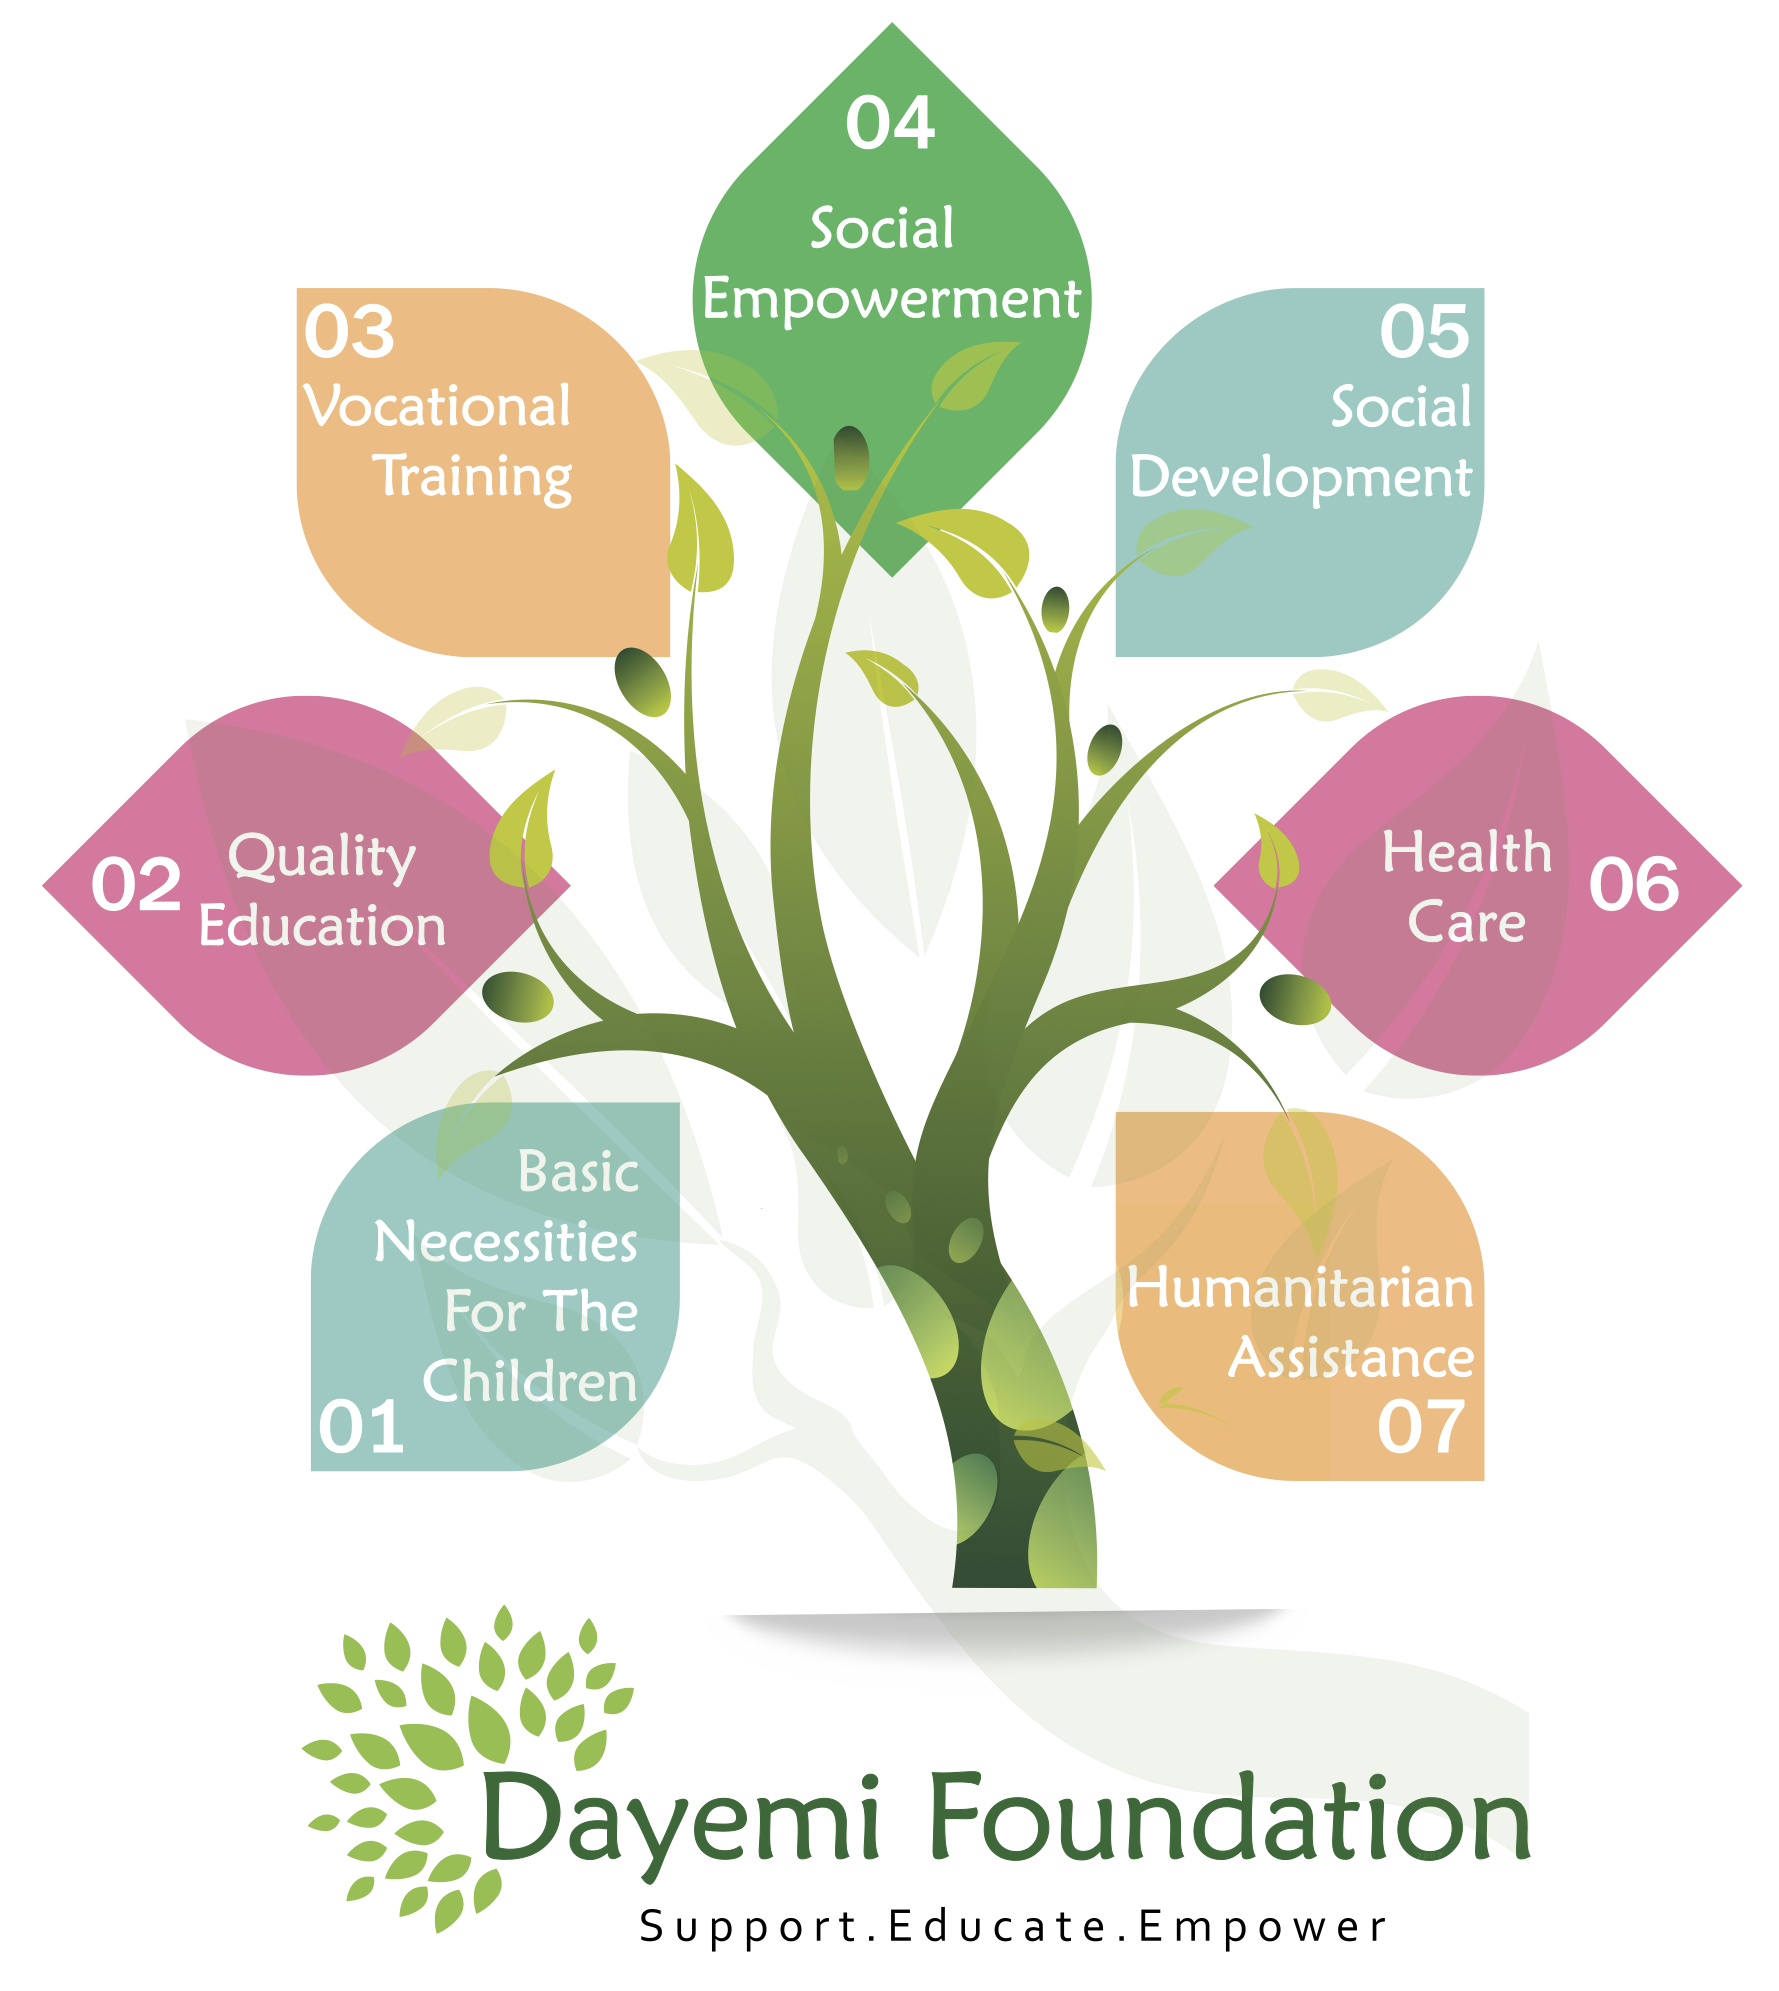 File:Dayemi Foundation Tree.png.